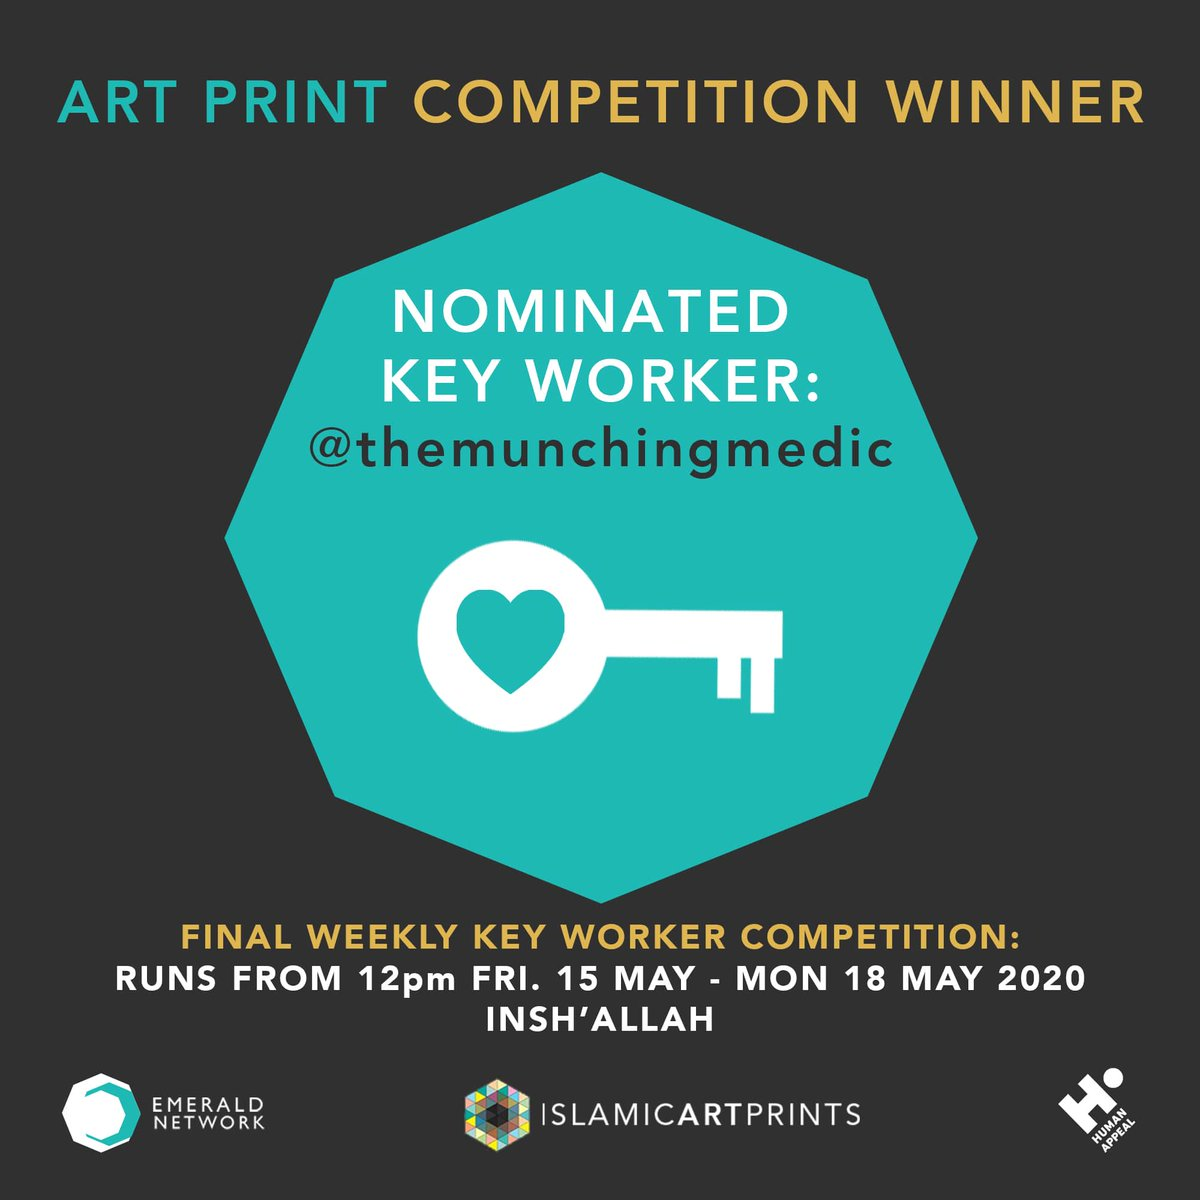 Announcing the winner of our #instagram #keyworker competition of #artoframadan print ... @munching_medic ! Lookout for the final comp this Friday-Monday - head over to https://t.co/6fzViZmSH5 https://t.co/p0uIQhif4o